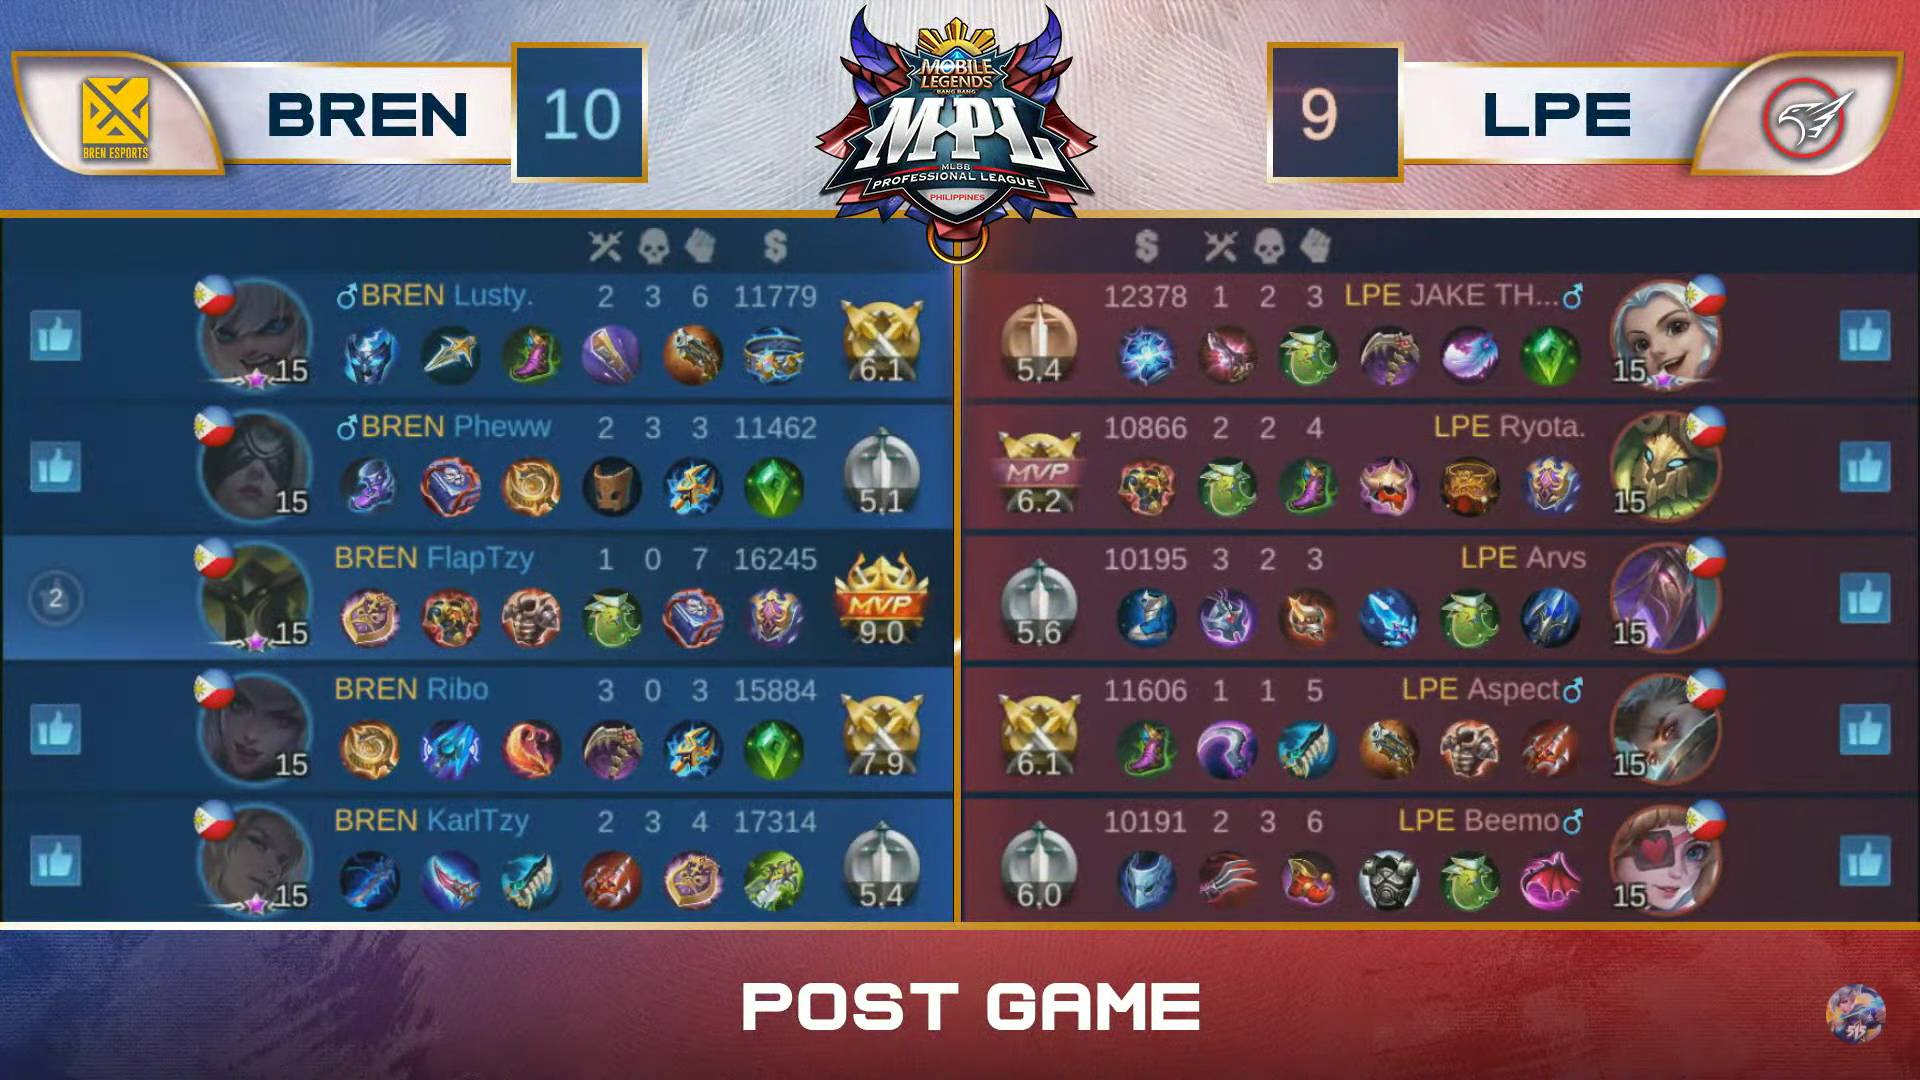 MPL-PH-Season-7-BREN-def-Playbook-Game-1 Bren vents frustration on Playbook for bounce back win in MPL PH ESports Mobile Legends MPL-PH News  - philippine sports news